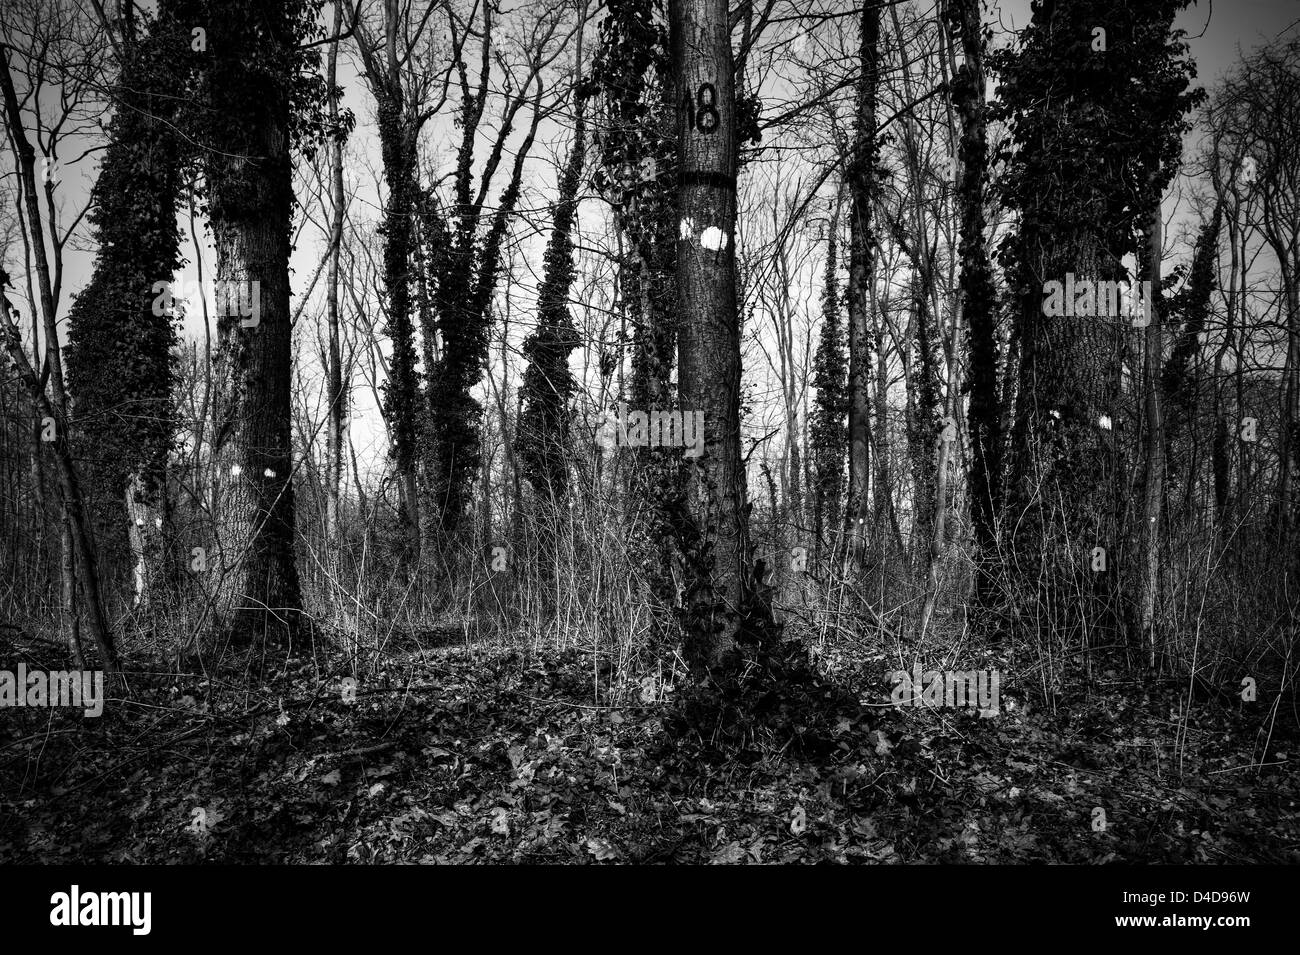 Numbered trees - Stock Image